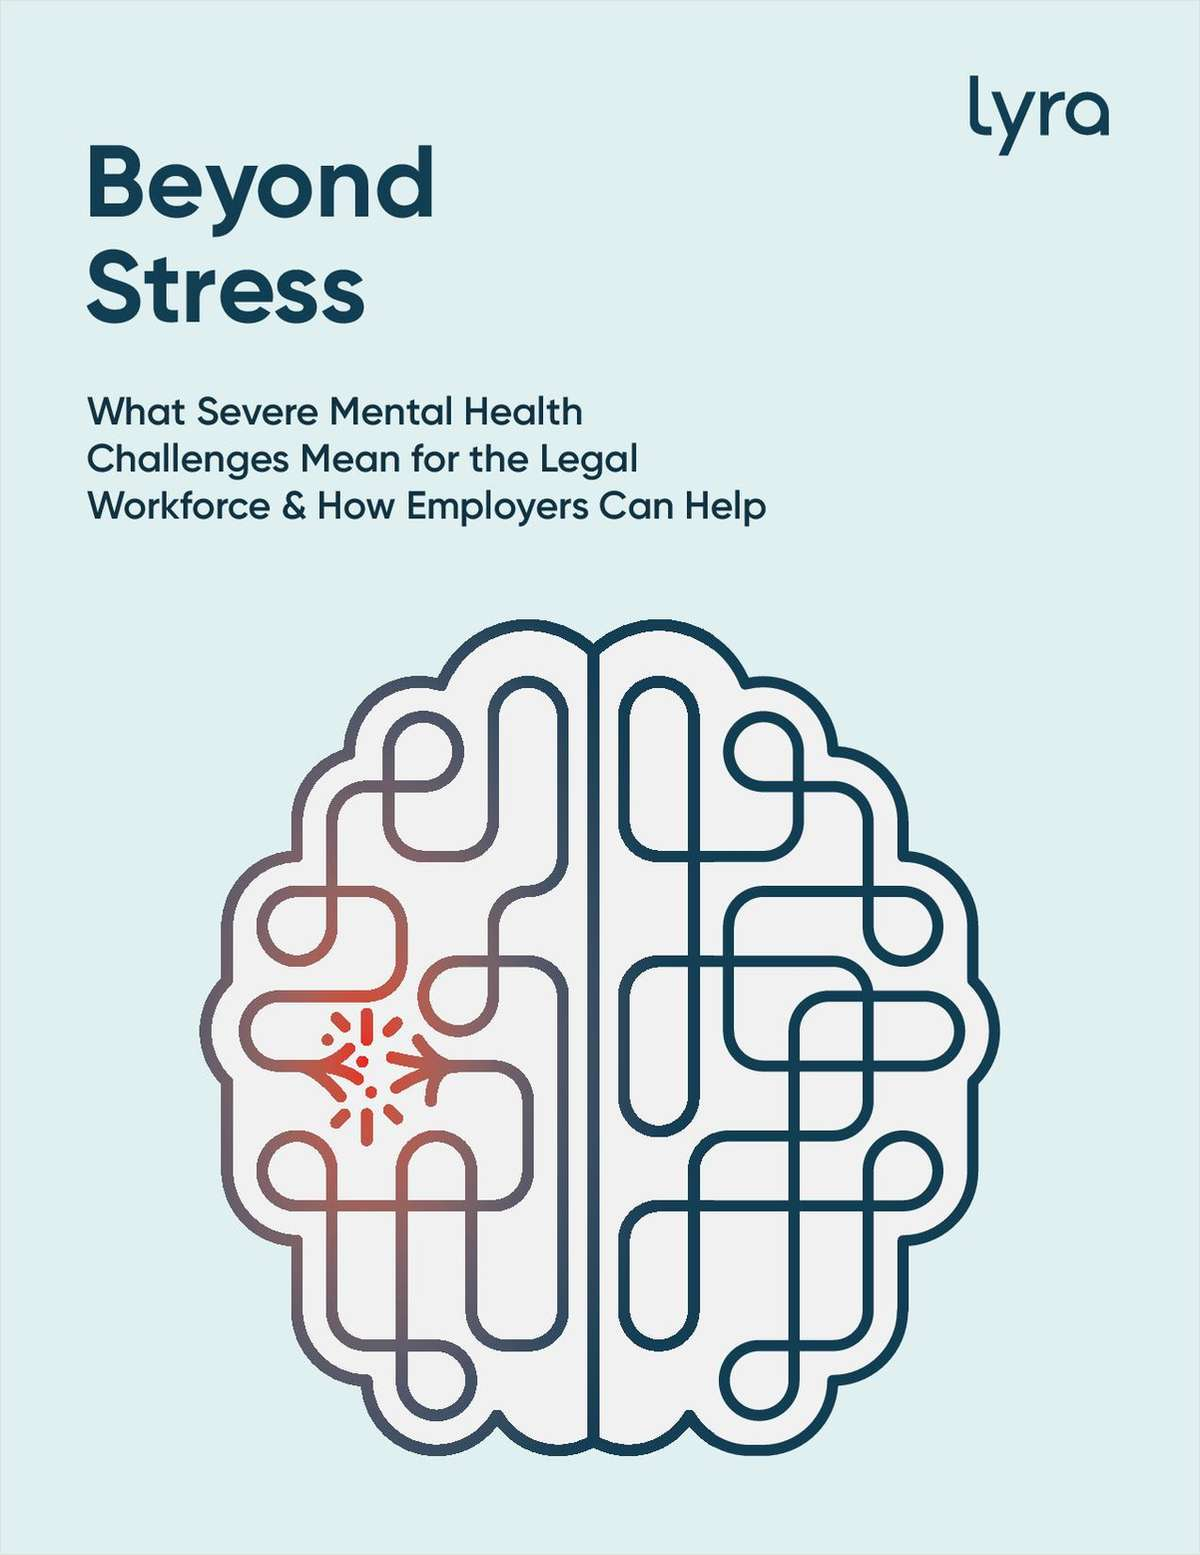 Lawyers' mental health situation was a significant concern before COVID, and now it represents an epidemic of its own. It's more crucial than ever for employers to offer resources that can help. Download this ebook to understand how you can help your legal team.